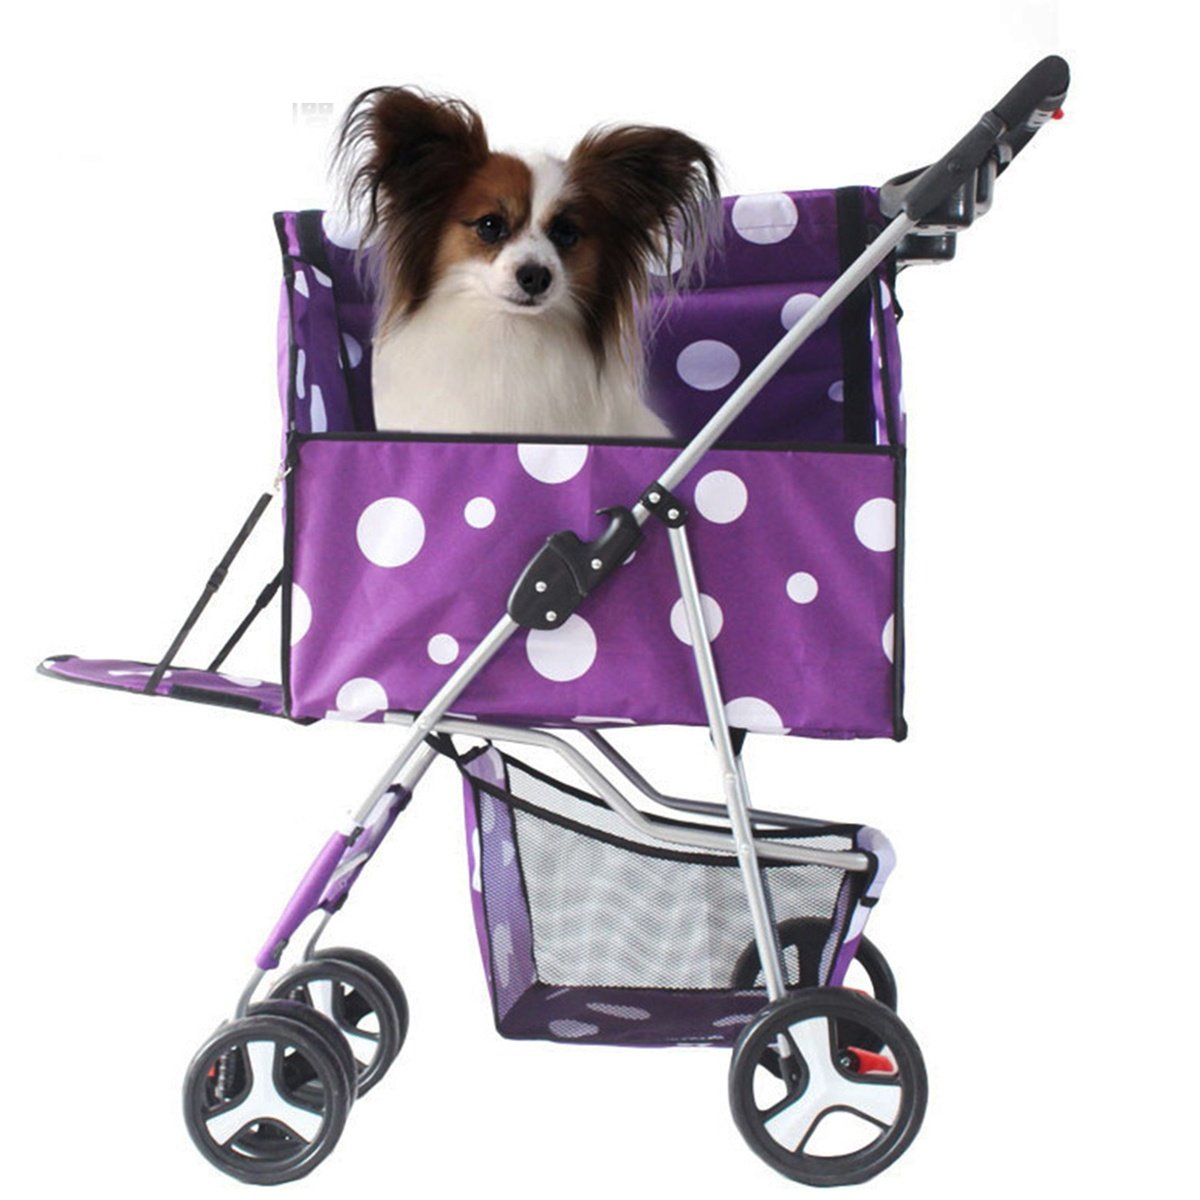 Purple shanzhizui Pet stroller Dog carts fold Removable and washable Split type Pet car bag kennel Pet house Rainproof Portable, pink